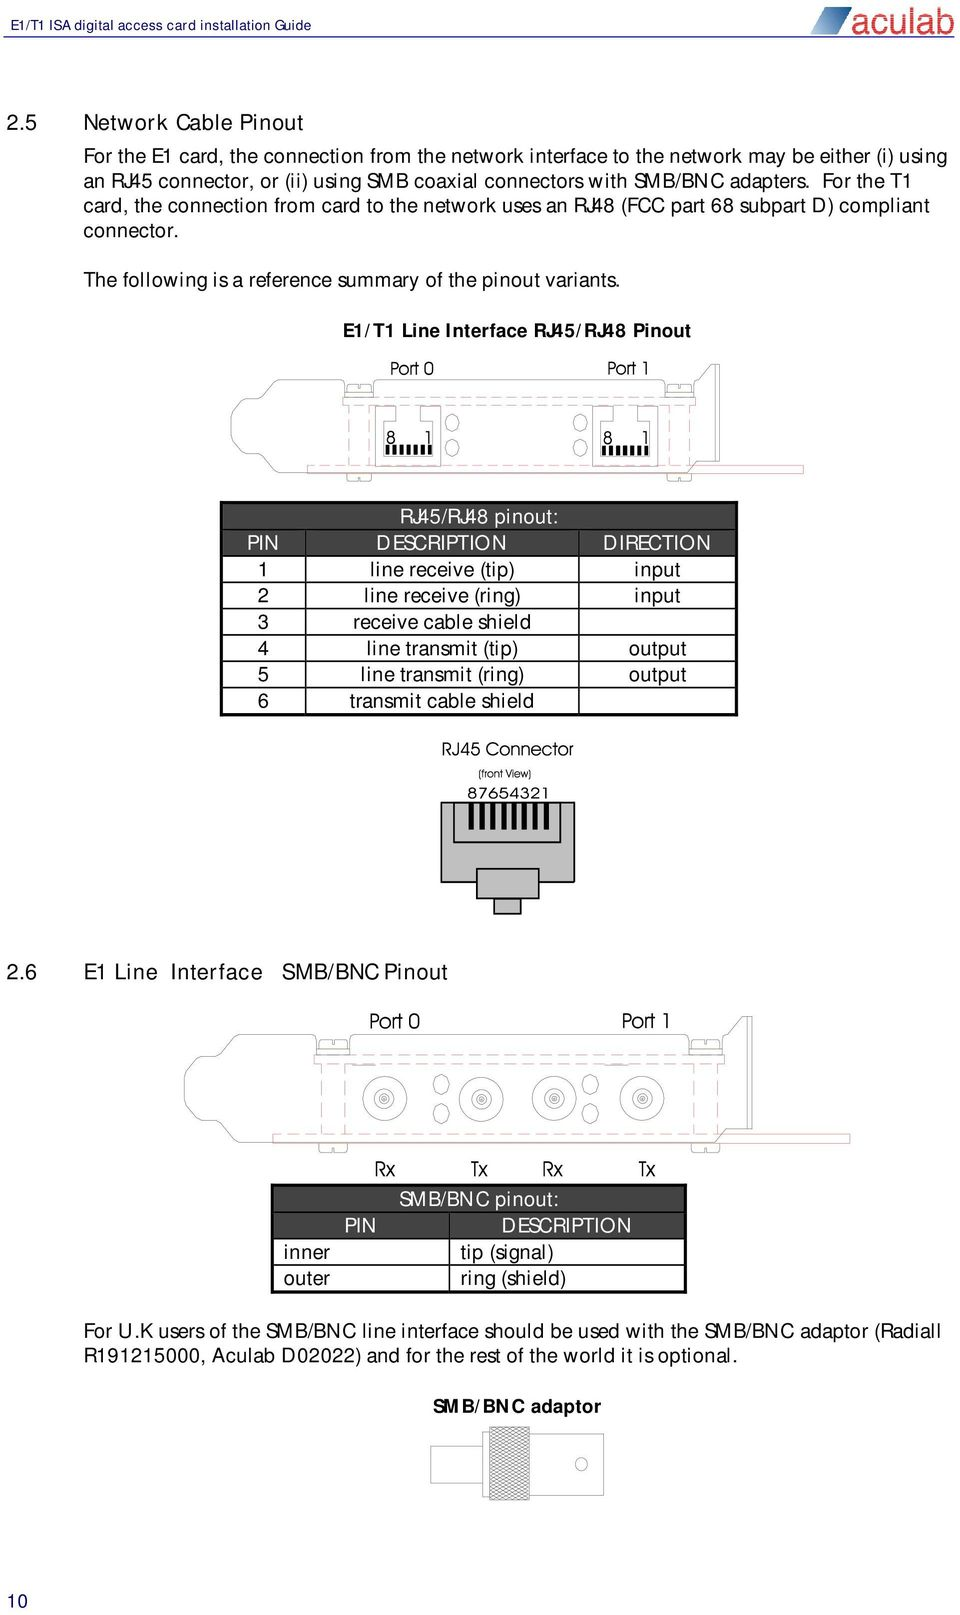 Rj48x Wiring Schematic Diagram Rj48 Best Library Cat 5 Cable Aculab E1 T1 Digital Network Access Isa